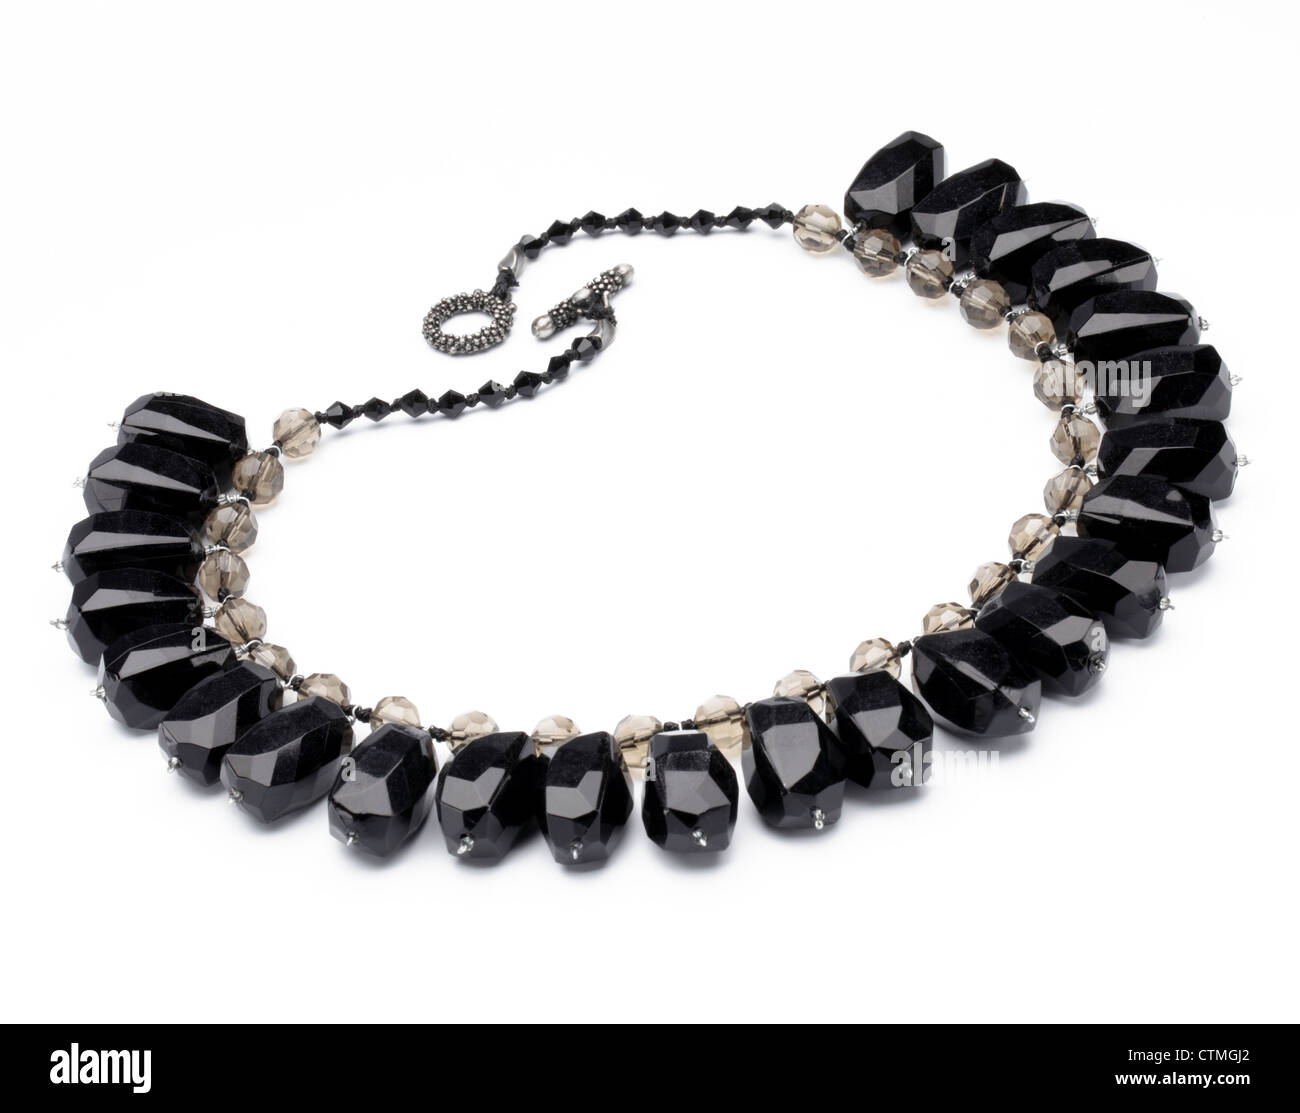 Costume jewelry. A necklace with large black stones. - Stock Image  sc 1 st  Alamy & Costume Jewelry Stock Photos u0026 Costume Jewelry Stock Images - Alamy